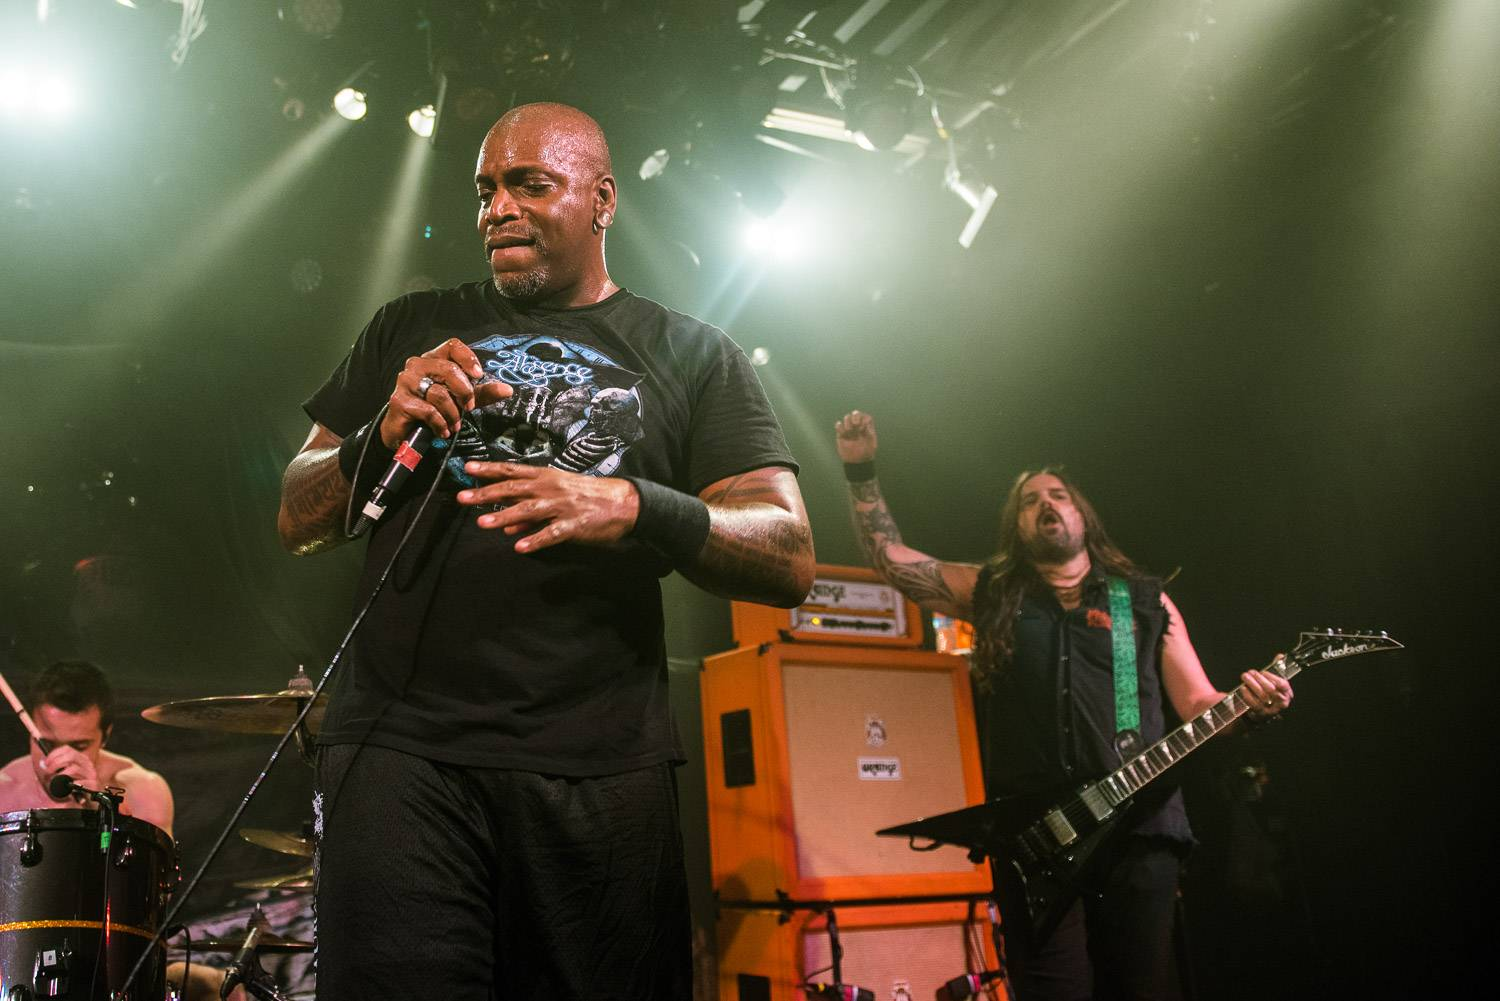 Sepultura at the Commodore Ballroom, Vancouver, May 10 2017. Pavel Boiko photo.